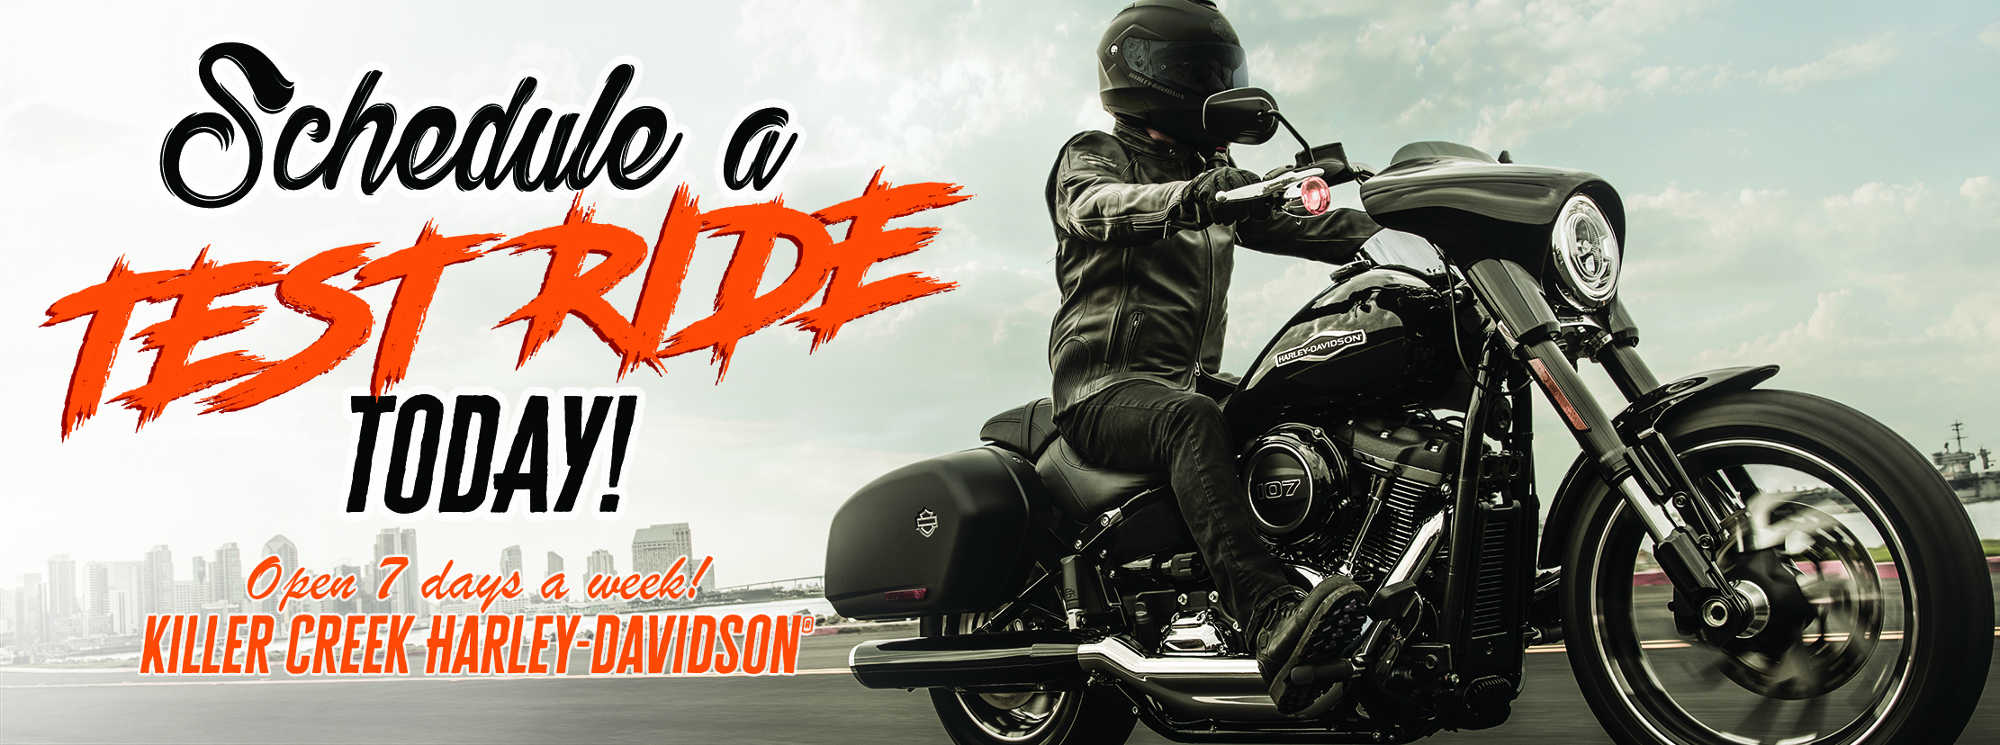 Come And Schedule a Test Ride